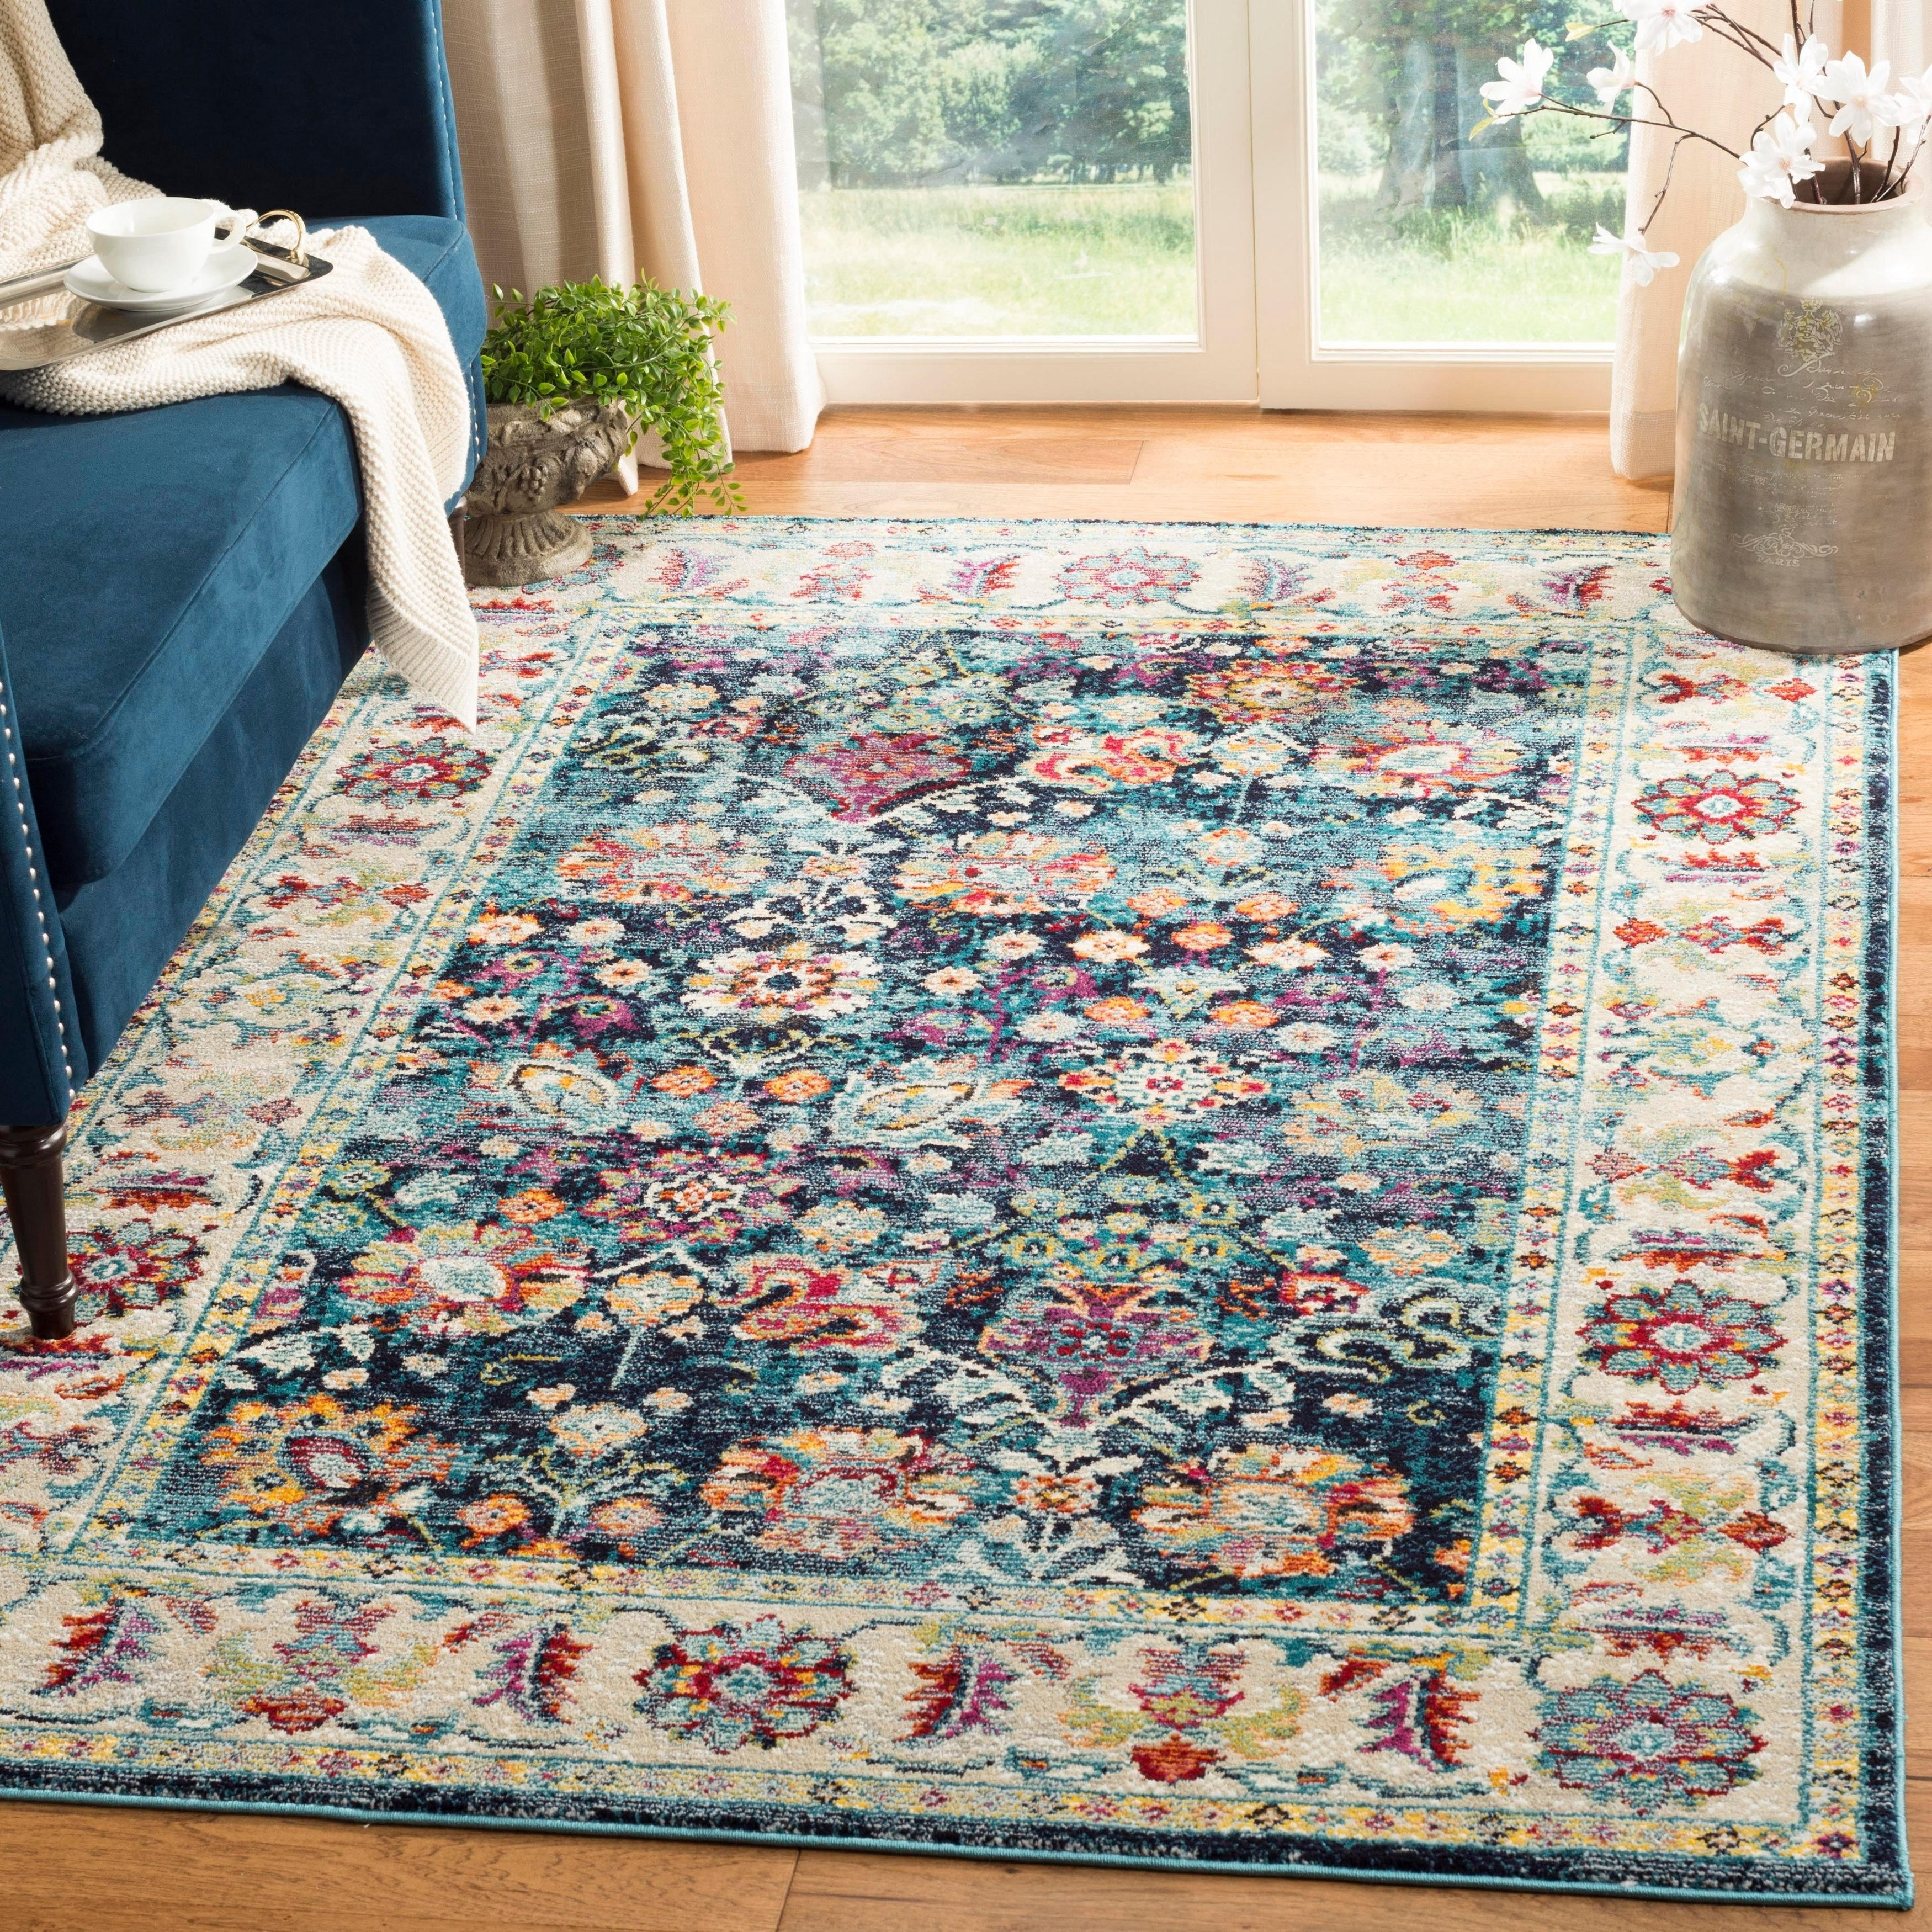 3x5 feet - 26 x 49 Blue Rug Branch Savannah Traditional Area Rug